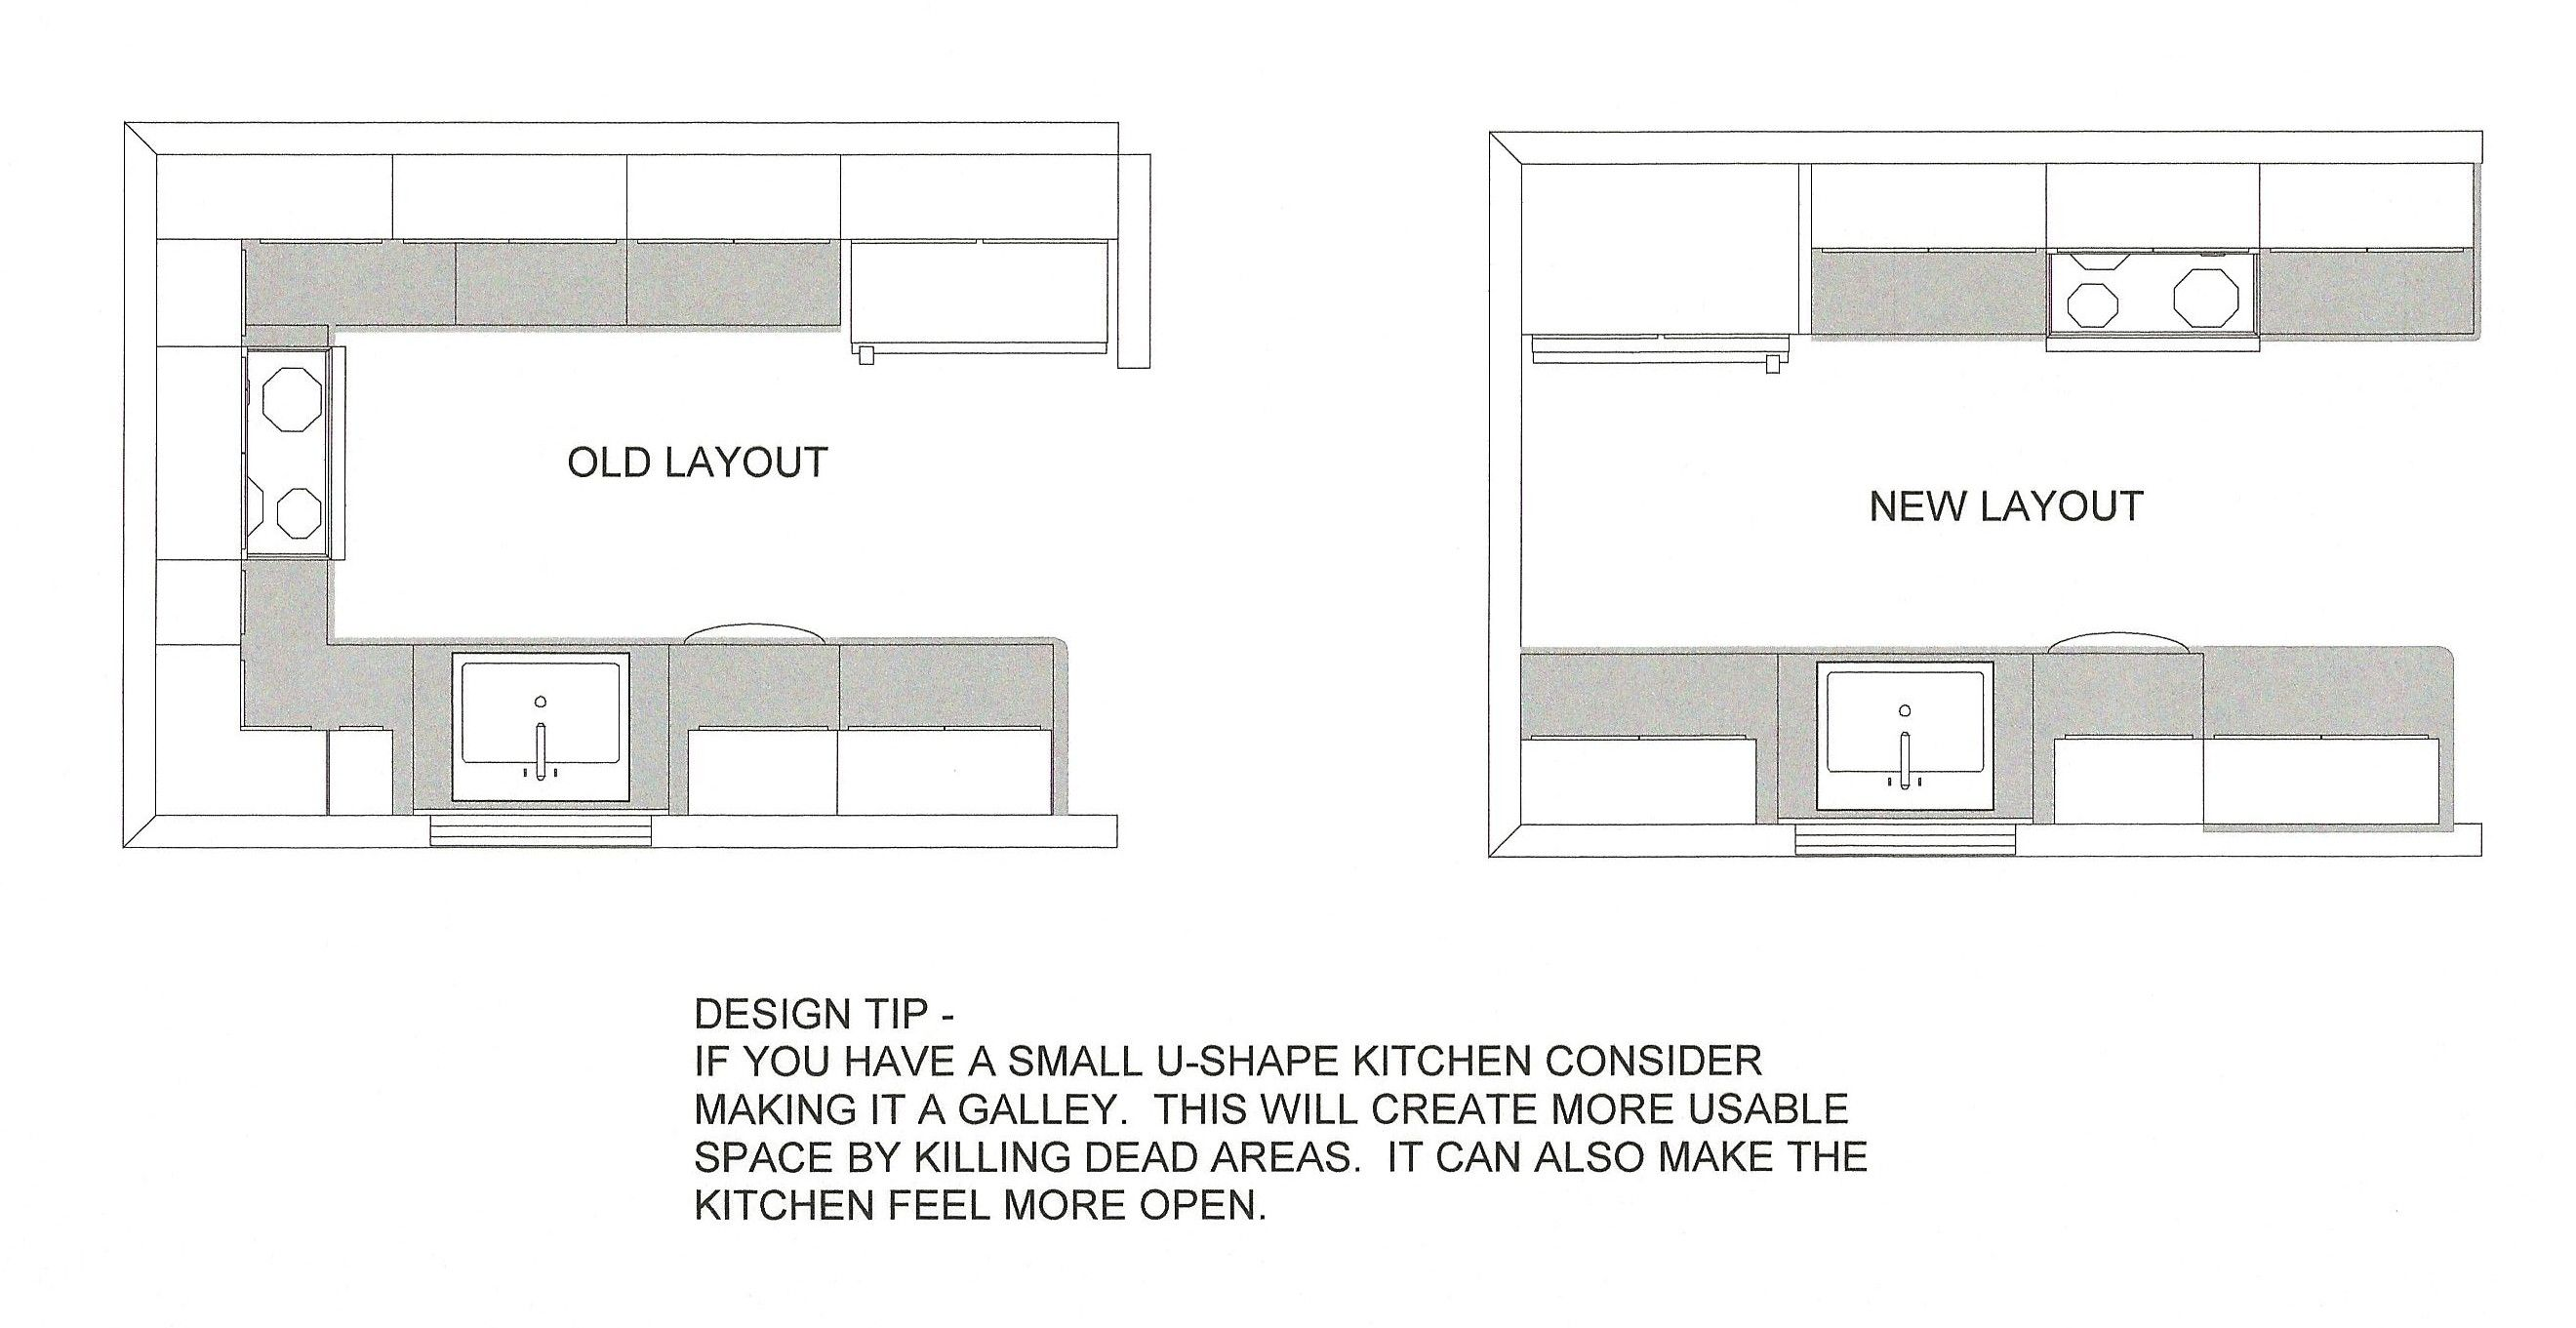 Narrow U Shaped Kitchen Designs  Google Search  706  Pinterest Endearing Kitchen Design For U Shaped Layouts 2018